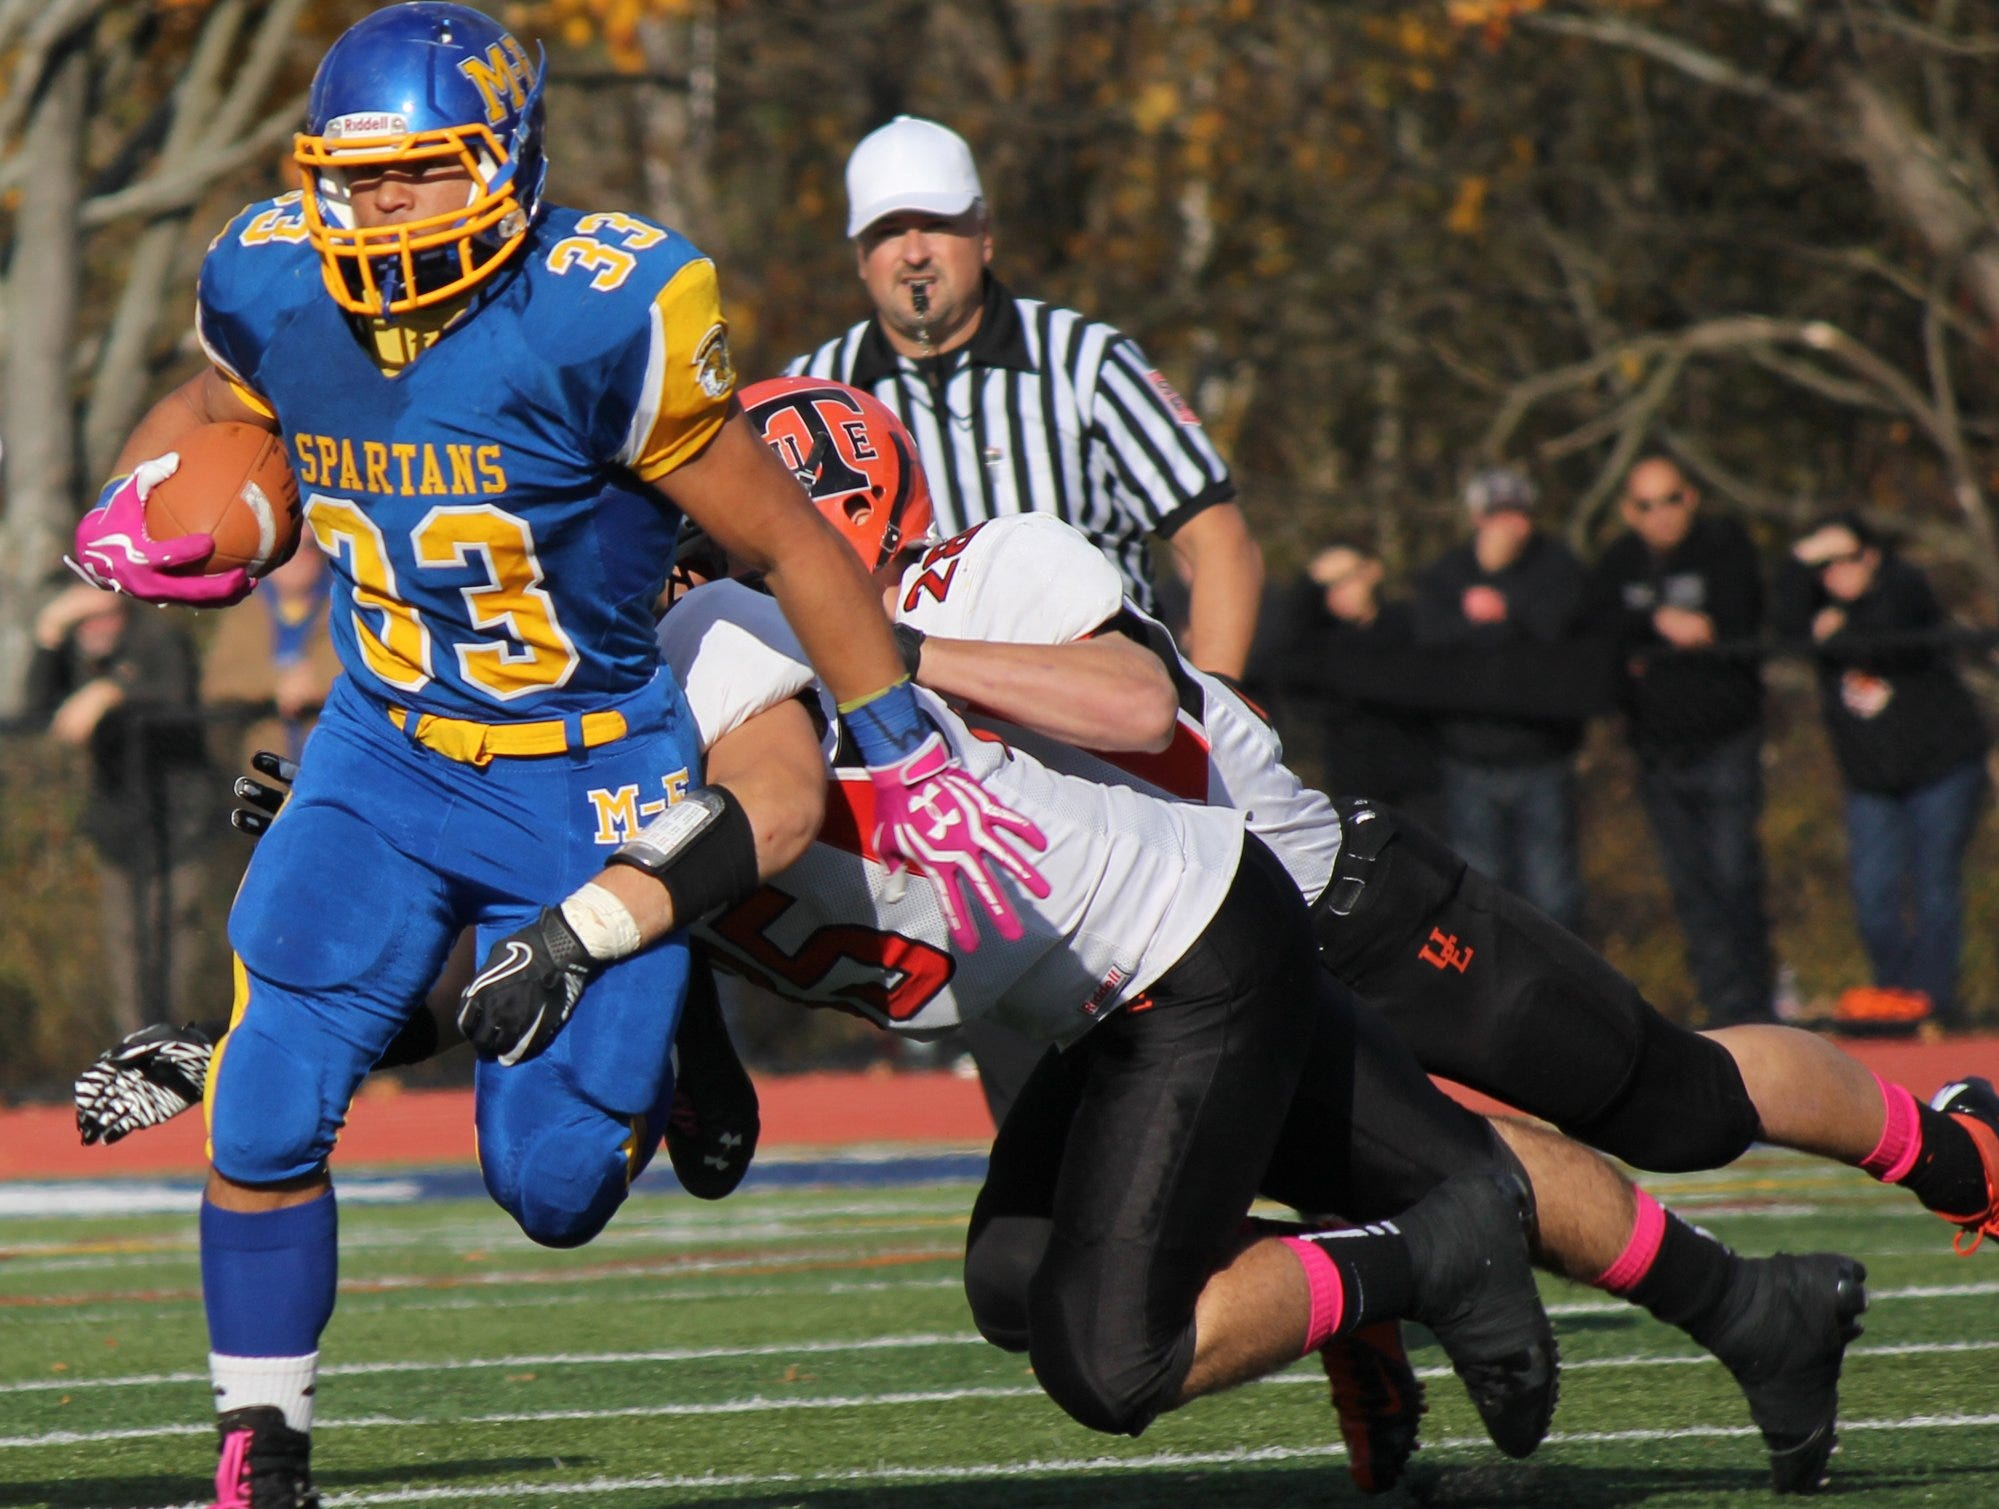 In 2012, Lucas DePofi and Drew Hogan of Union-Endicott try to slow Maine-Endwell's Darnell Woolfolk in the second half at Spartan Stadium.